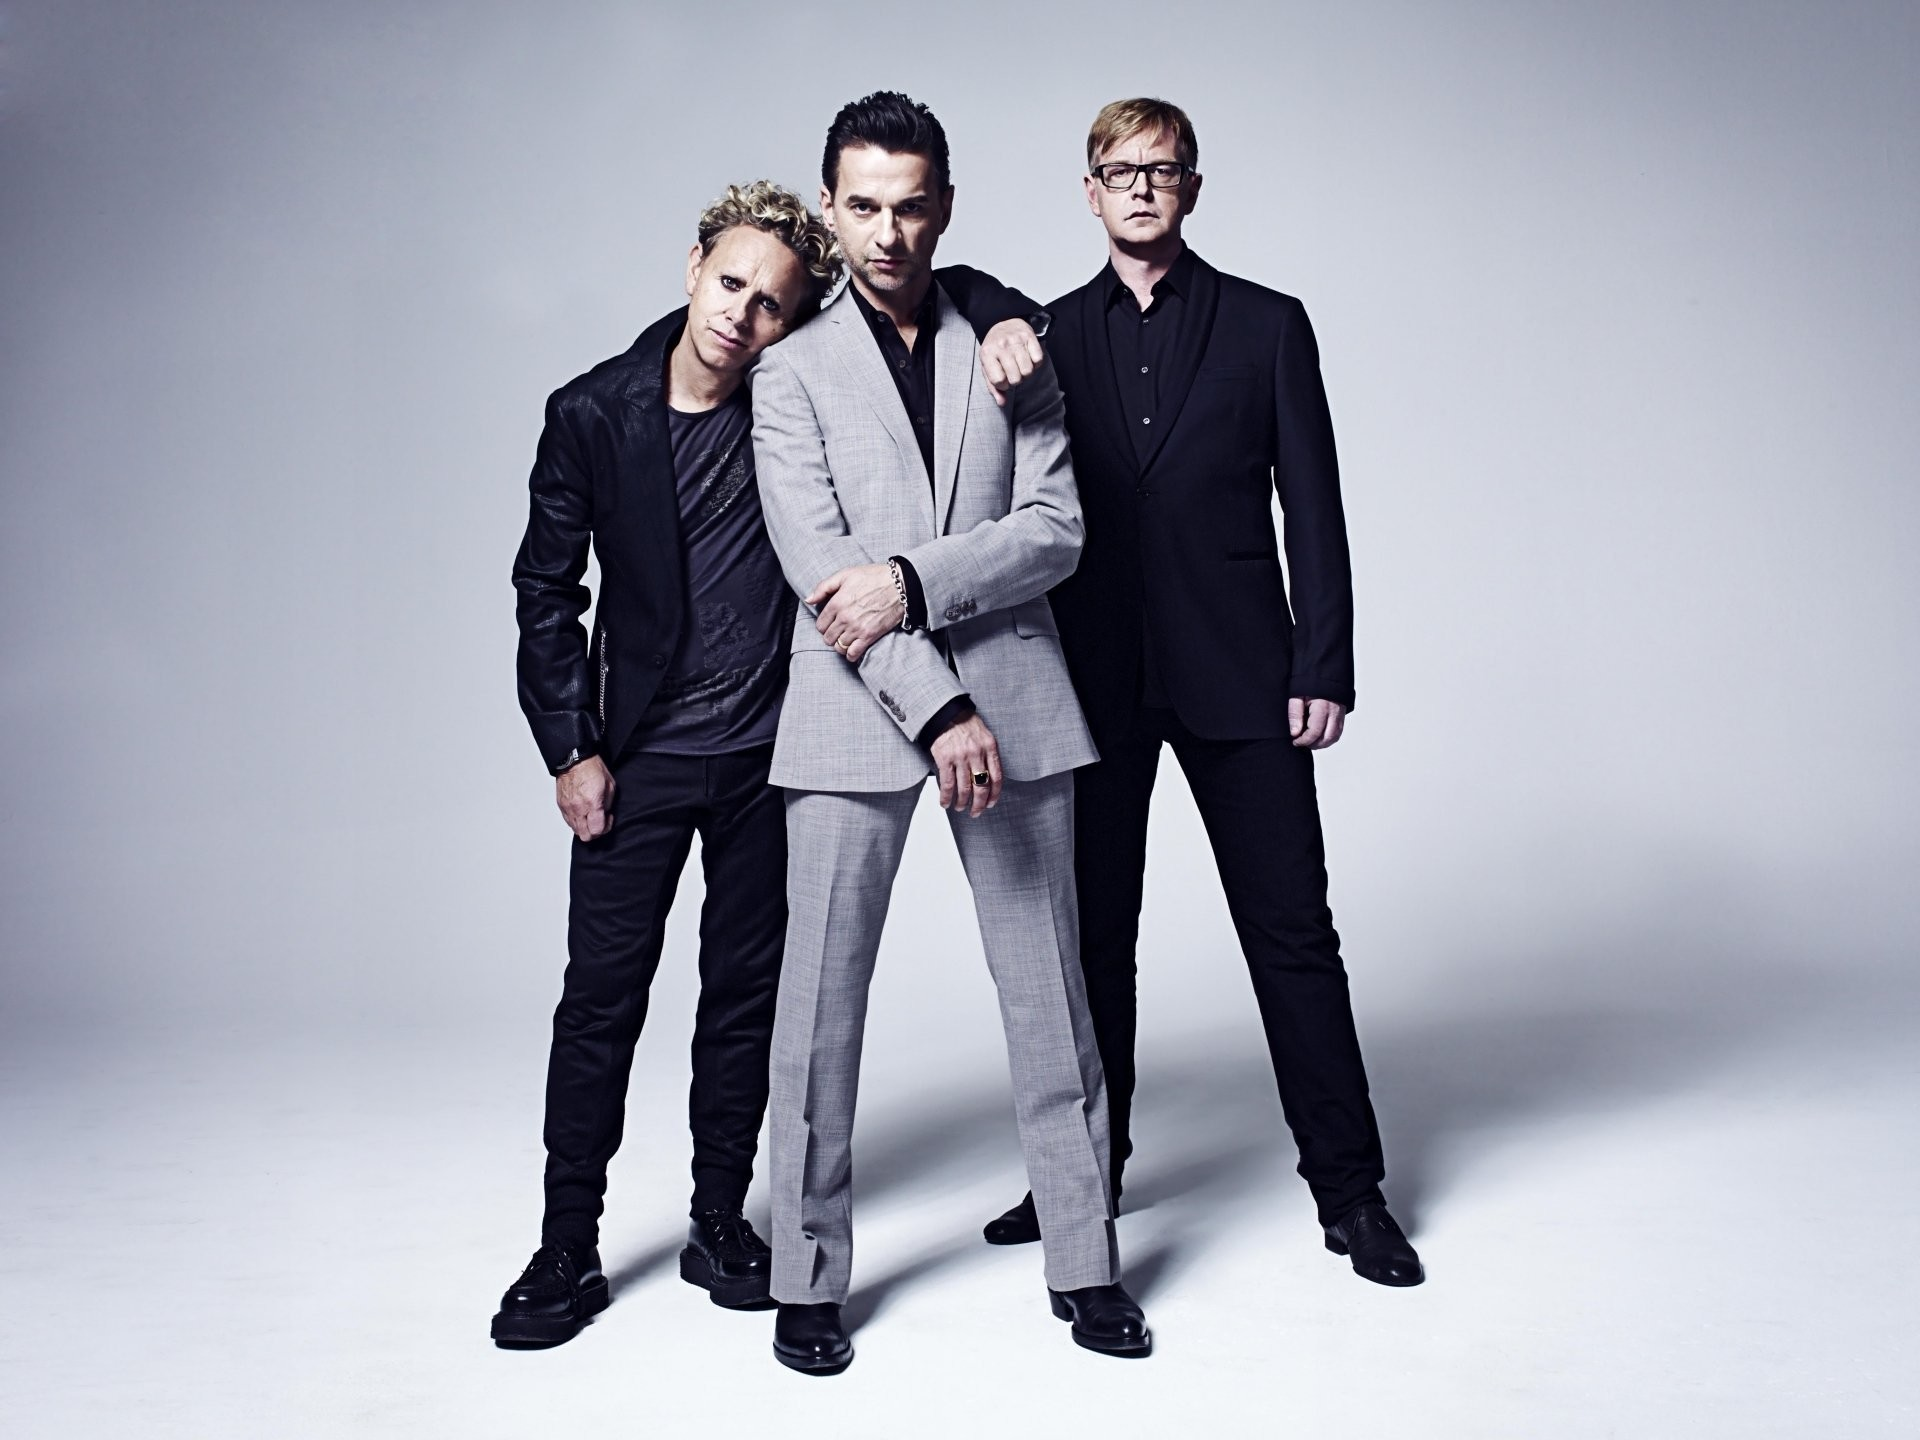 1920x1440 depeche mode depeche mode herald fashion legendary band men musicians david  gahan dave gahan martin gore